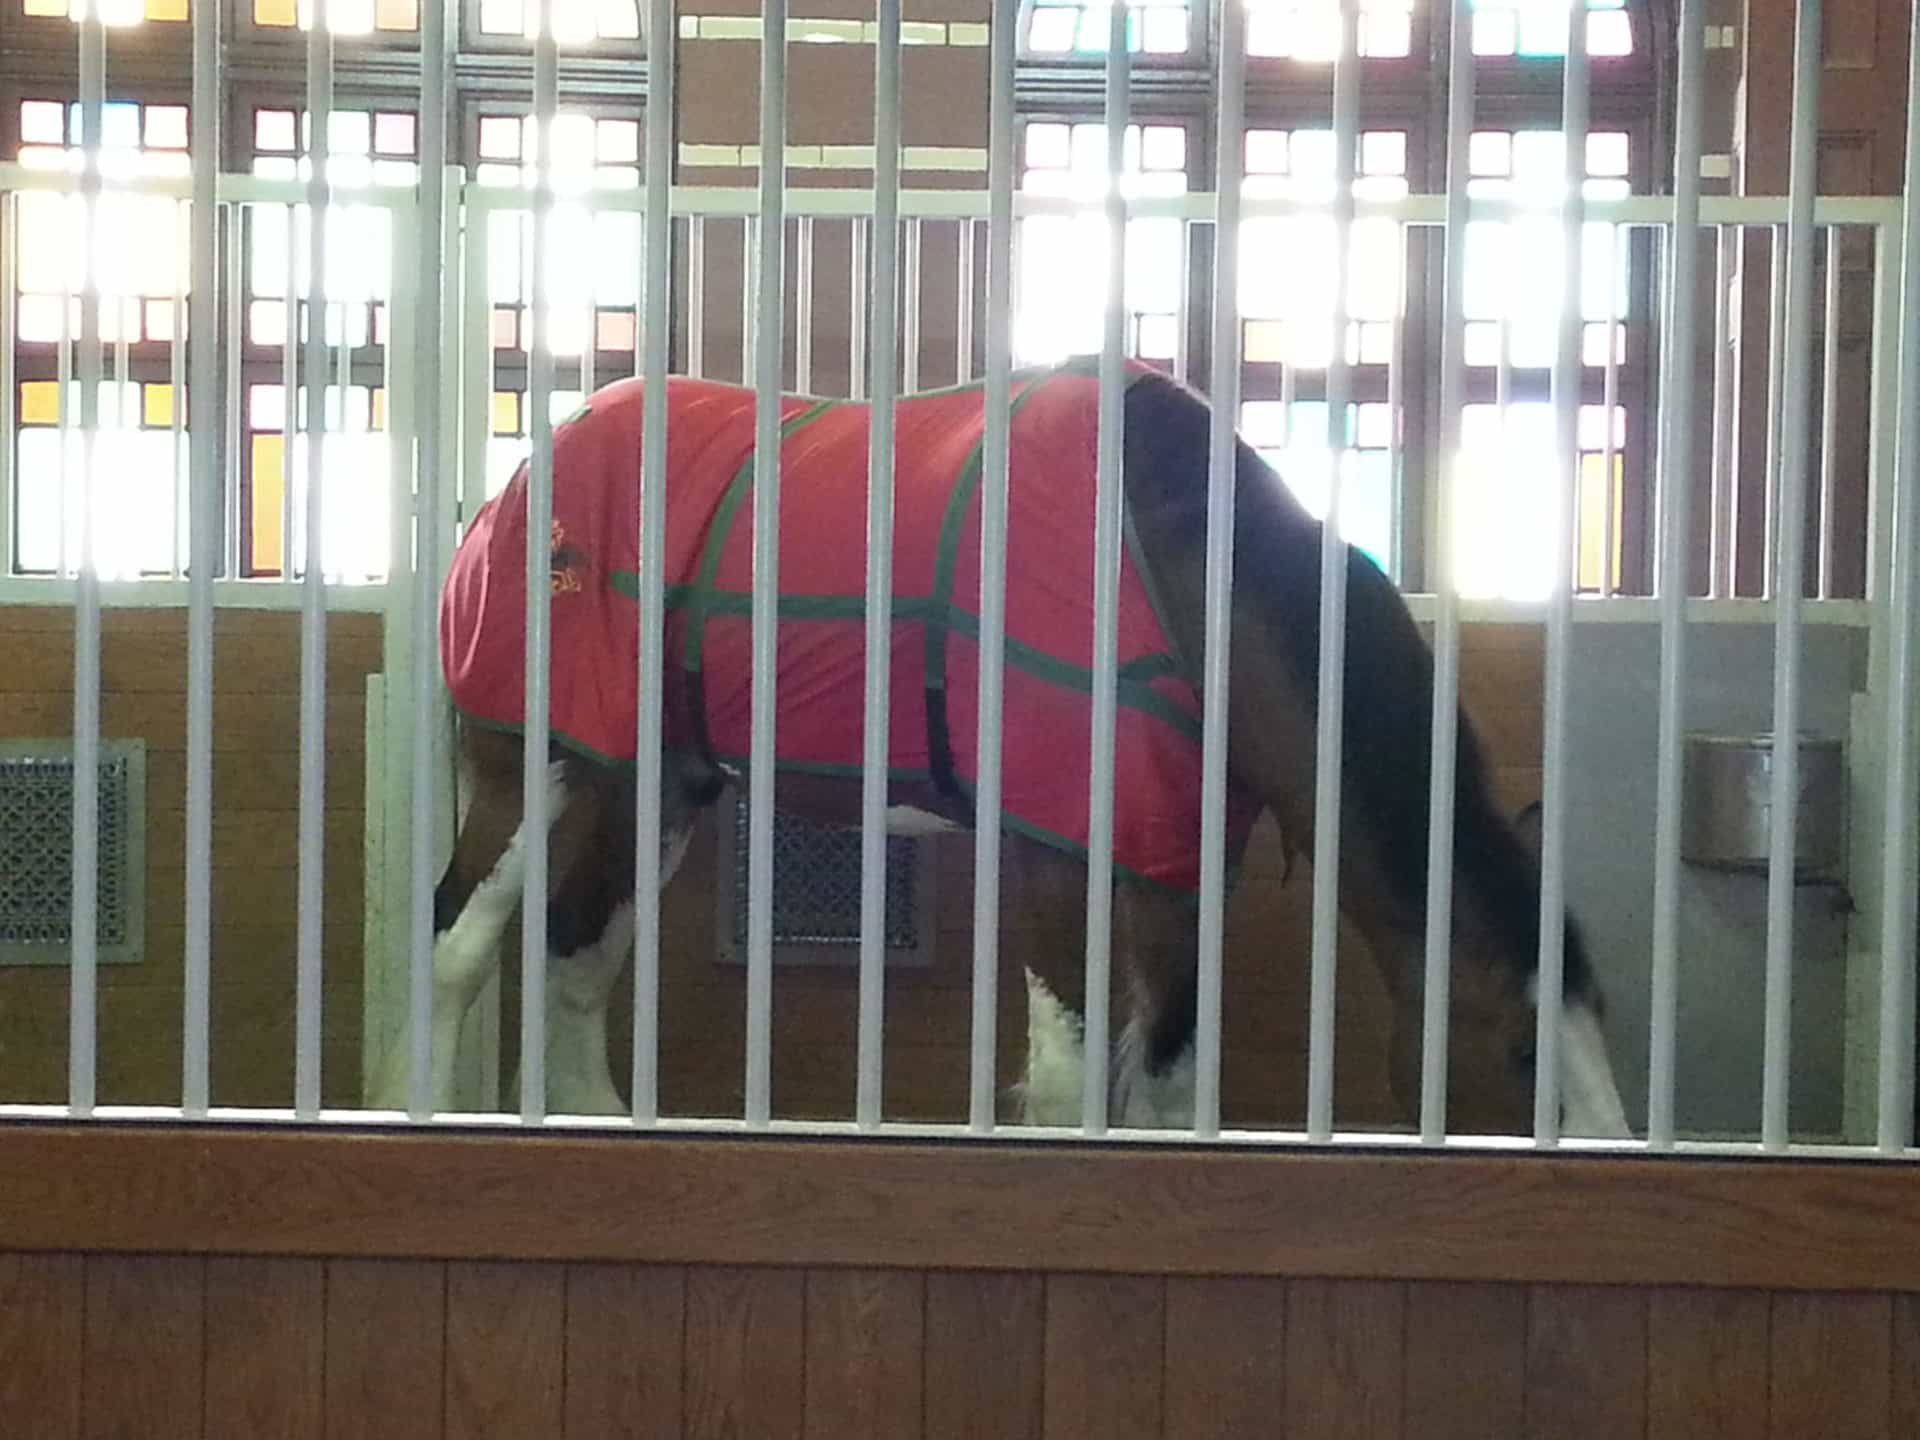 Budweiser Brewery Tour, St. Louis, MO - Clydesdale in barn